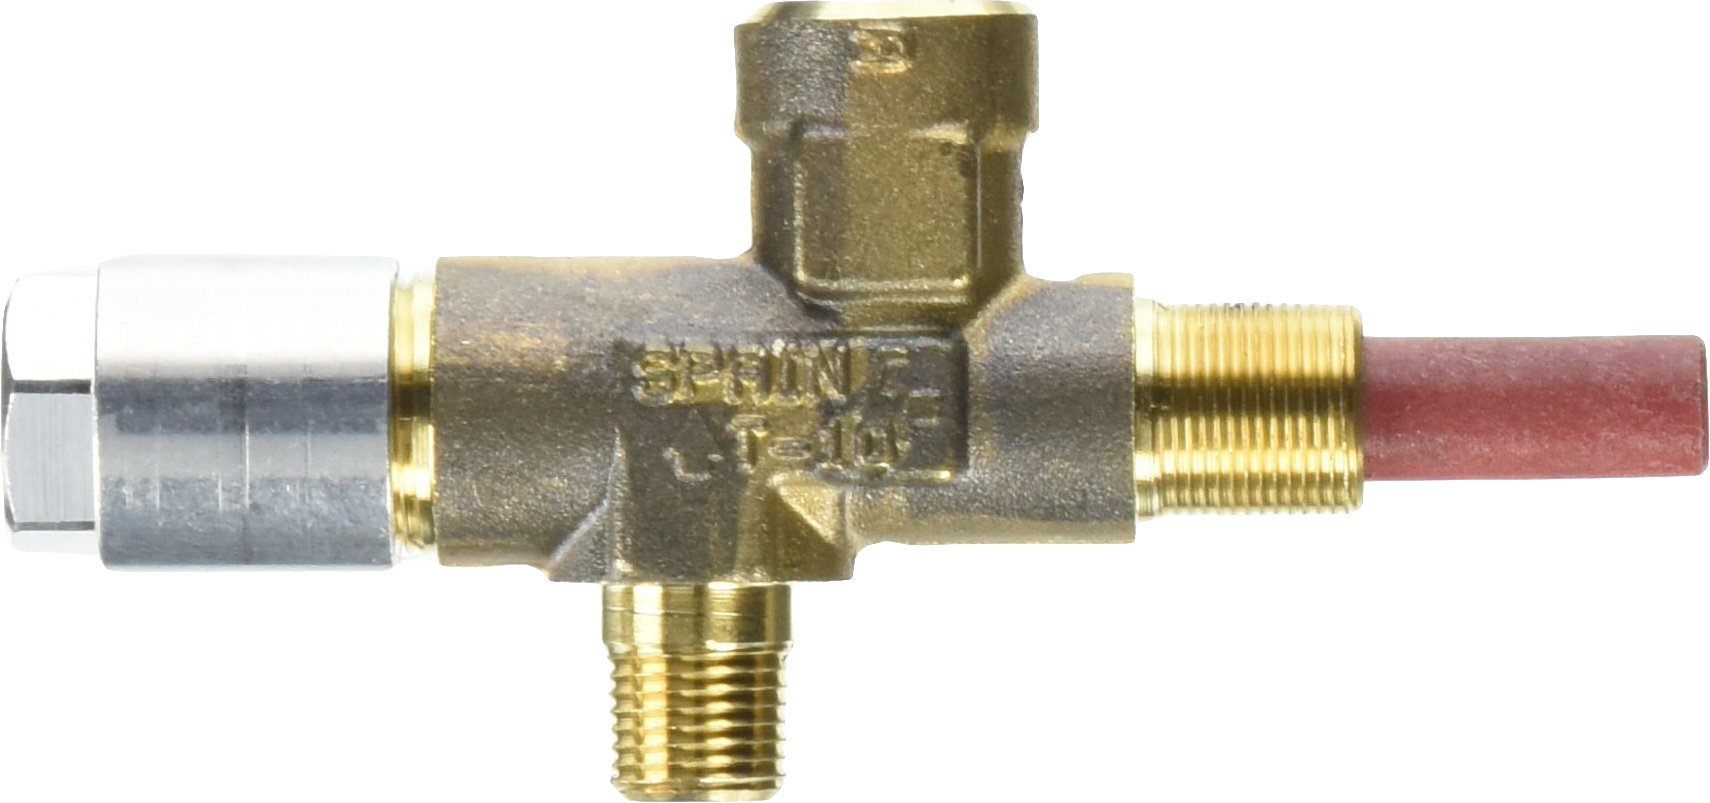 NORCOLD INC Norcold 622746001 Safety Valve